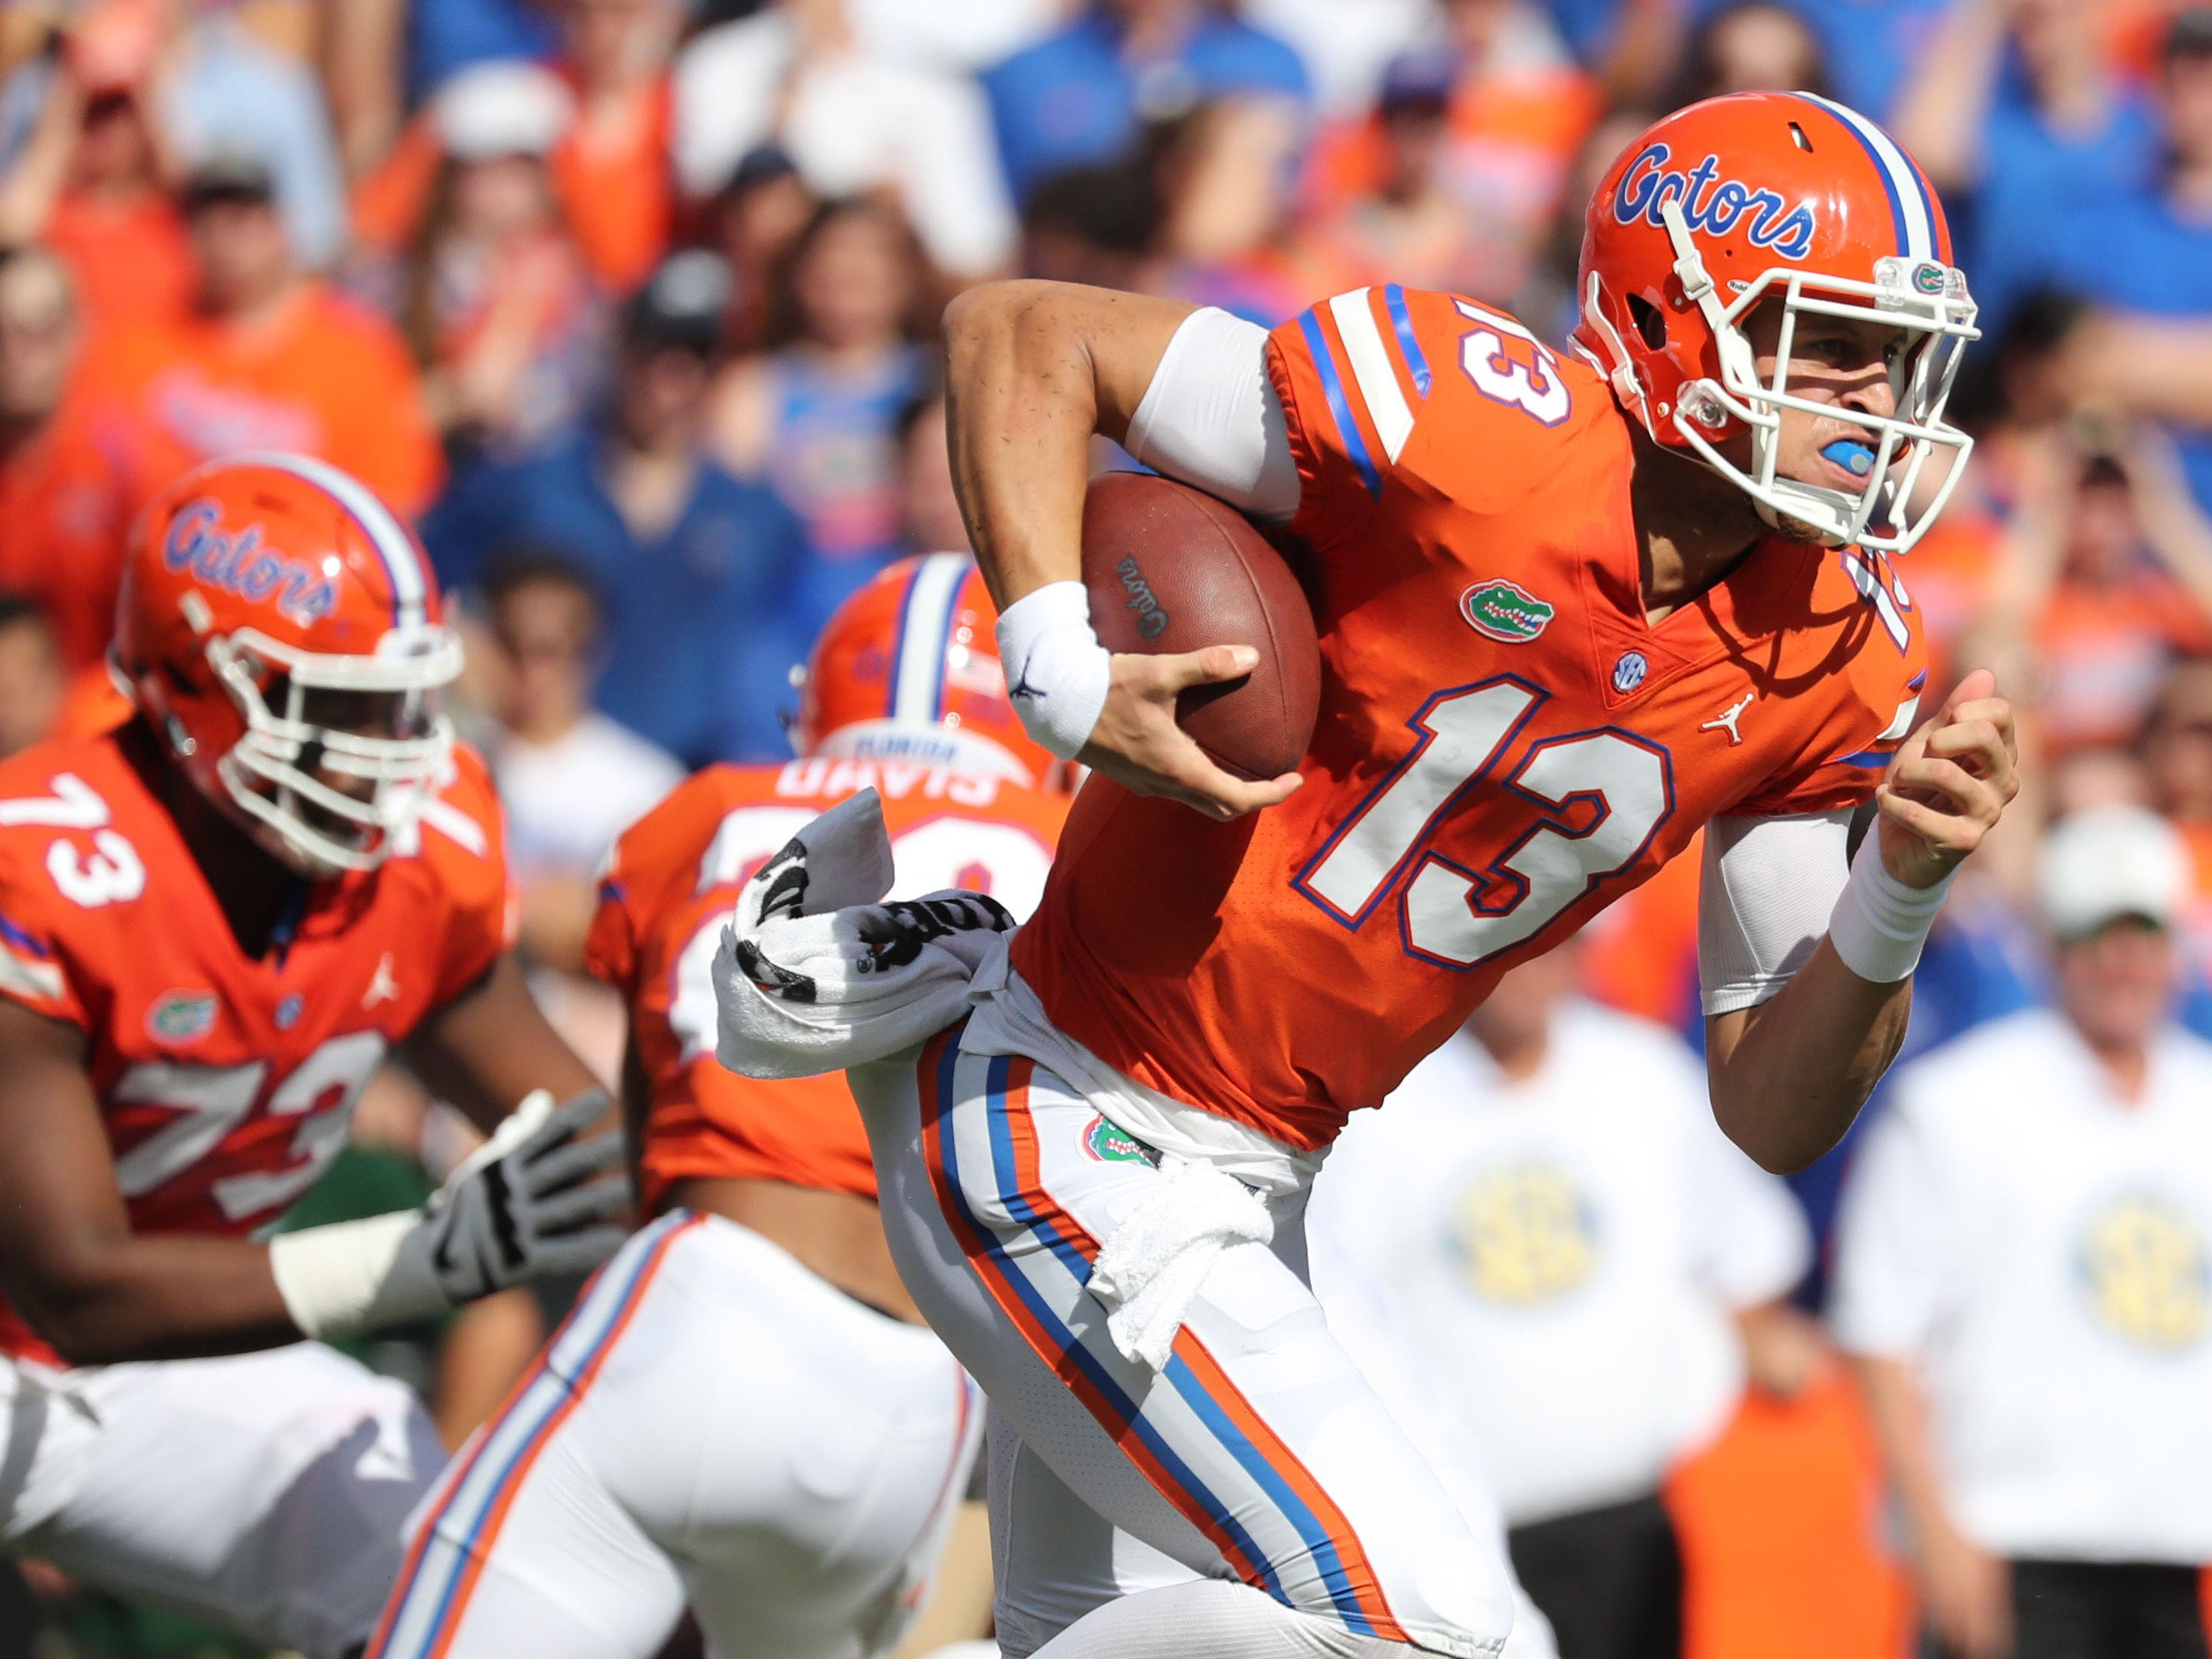 Sep 15, 2018; Gainesville, FL, USA;Florida Gators quarterback Feleipe Franks (13) runs with the ball against the Colorado State Rams during the first quarter at Ben Hill Griffin Stadium. Mandatory Credit: Kim Klement-USA TODAY Sports